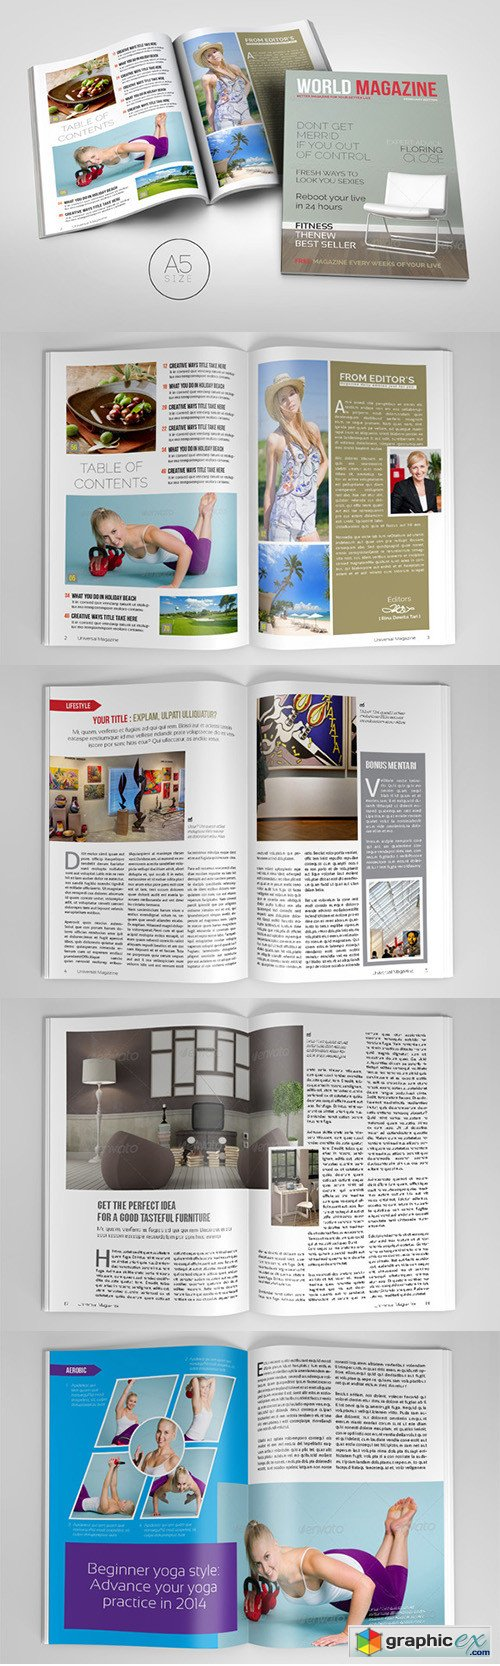 A5 Magazine Template 2 » Free Download Vector Stock Image Photoshop Icon